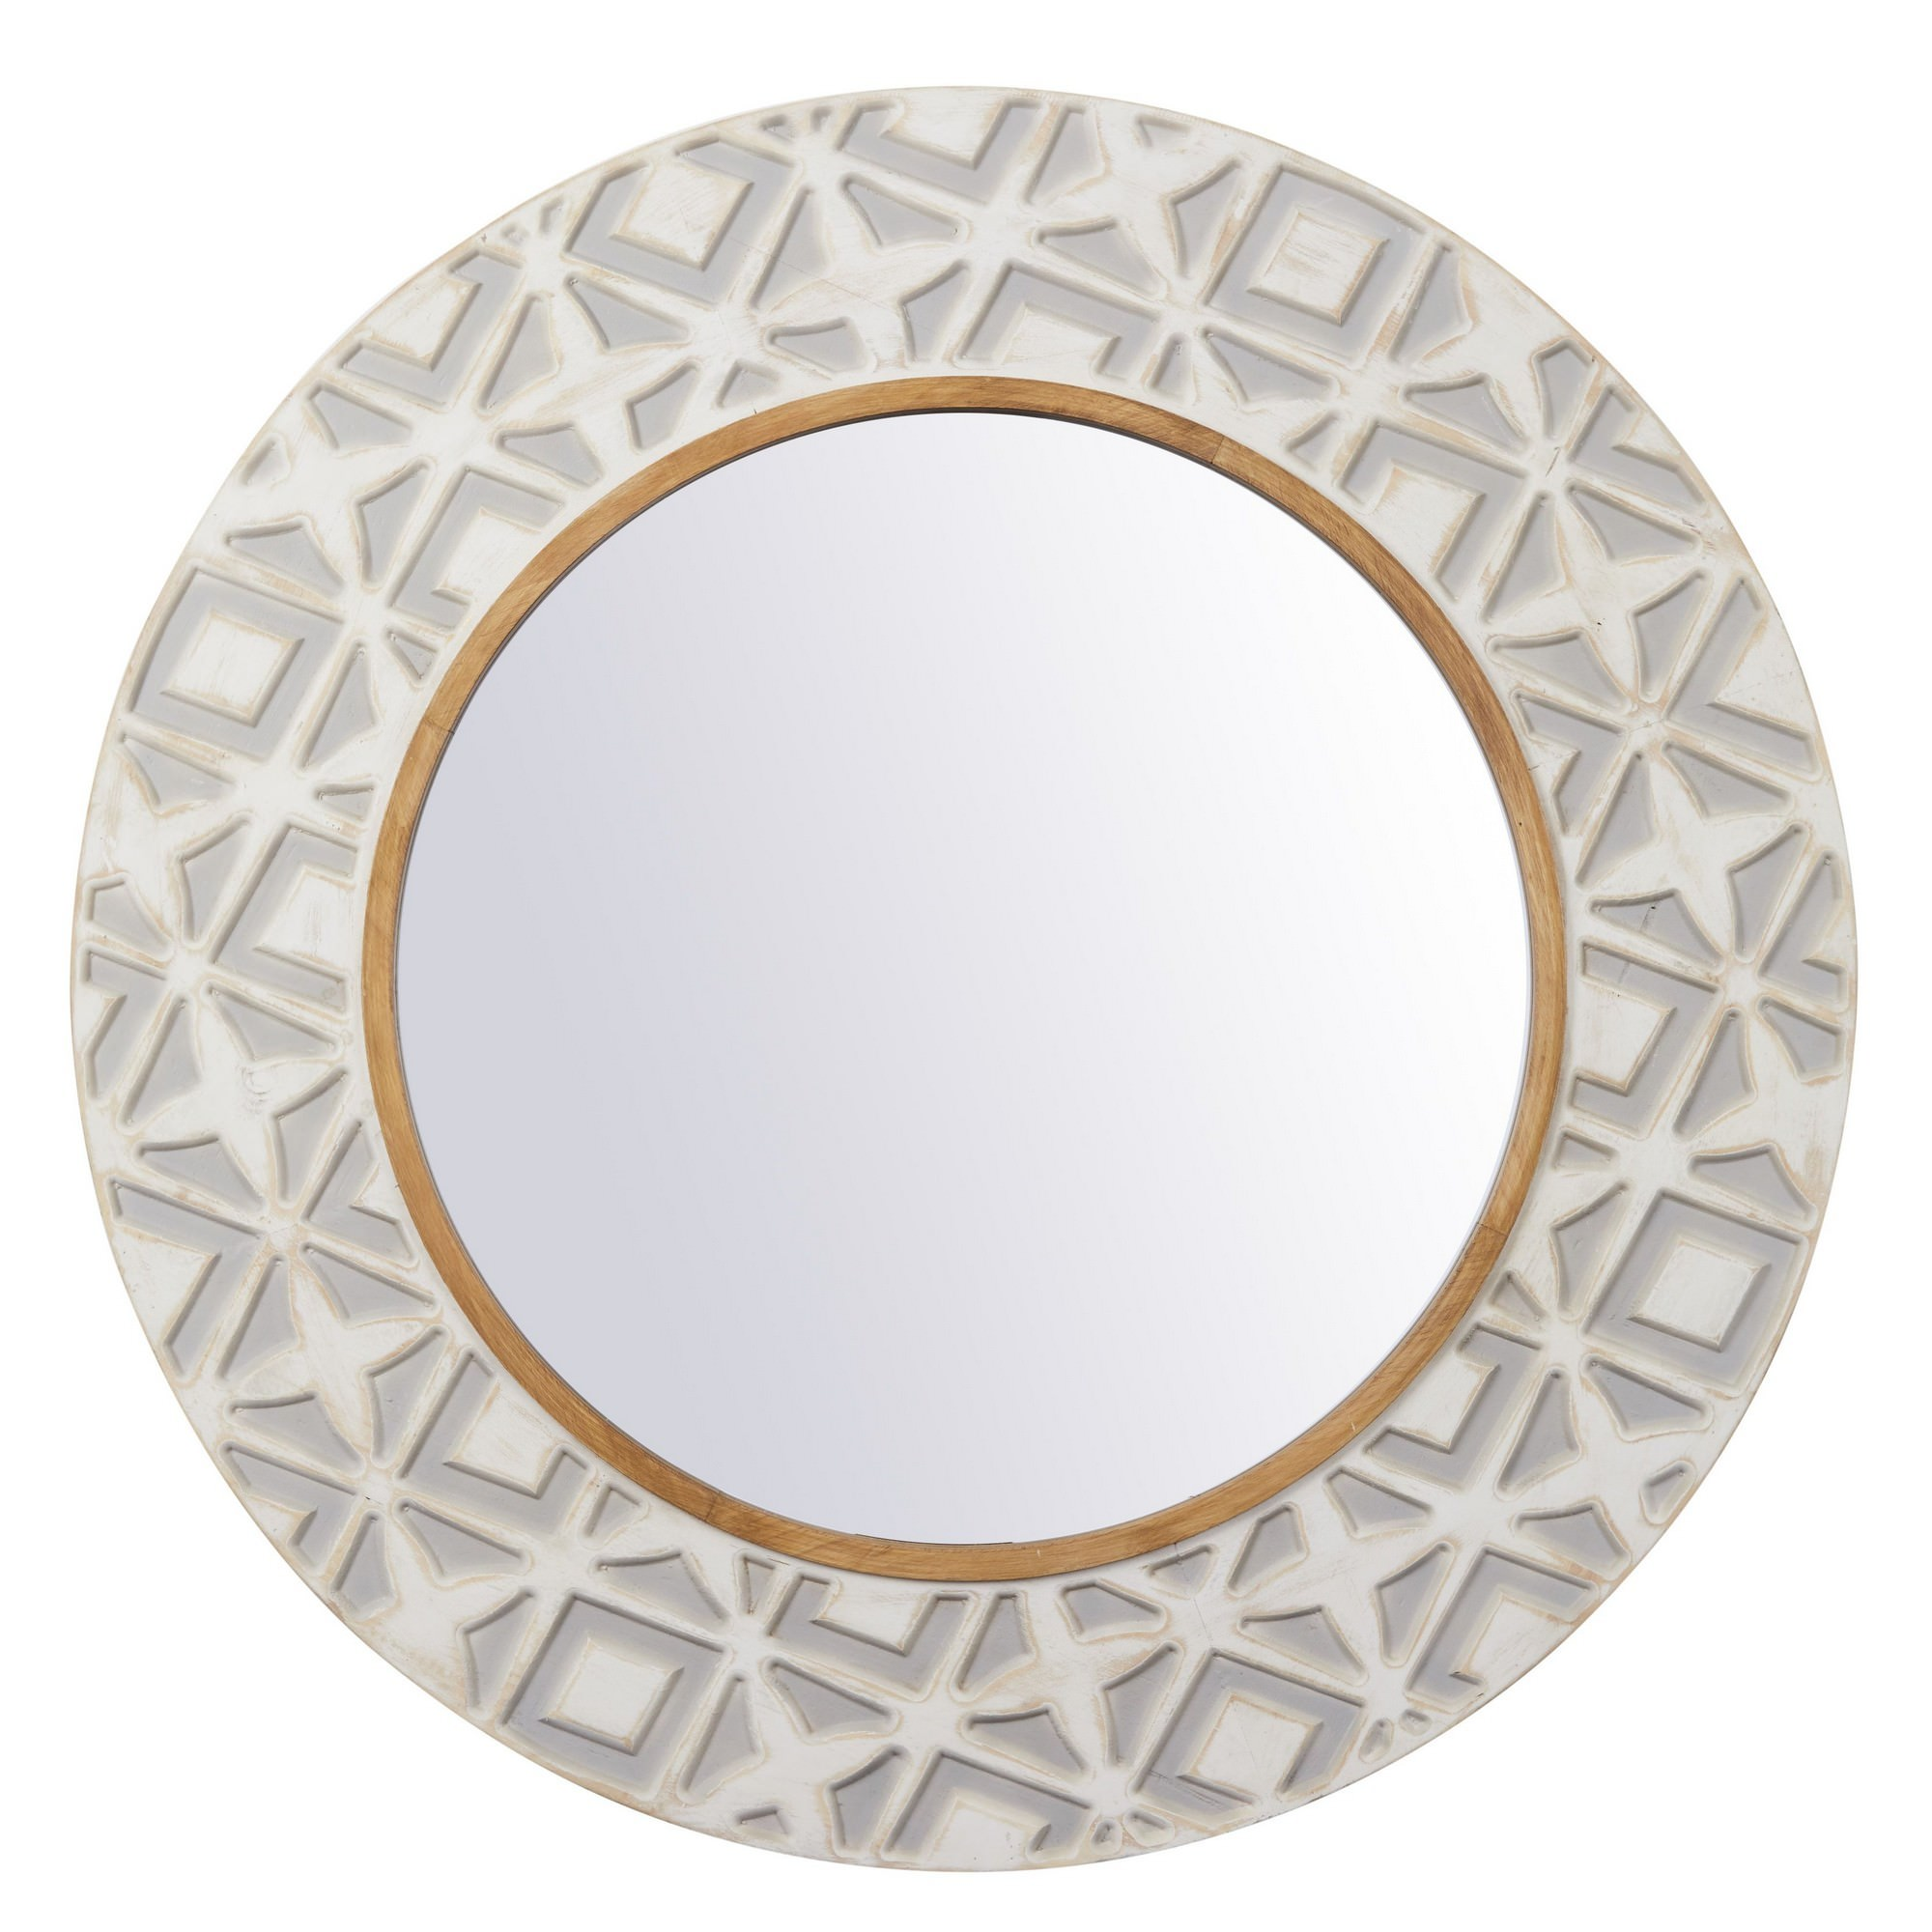 Nile Fir Timber Frame Round Wall Mirror, 90cm